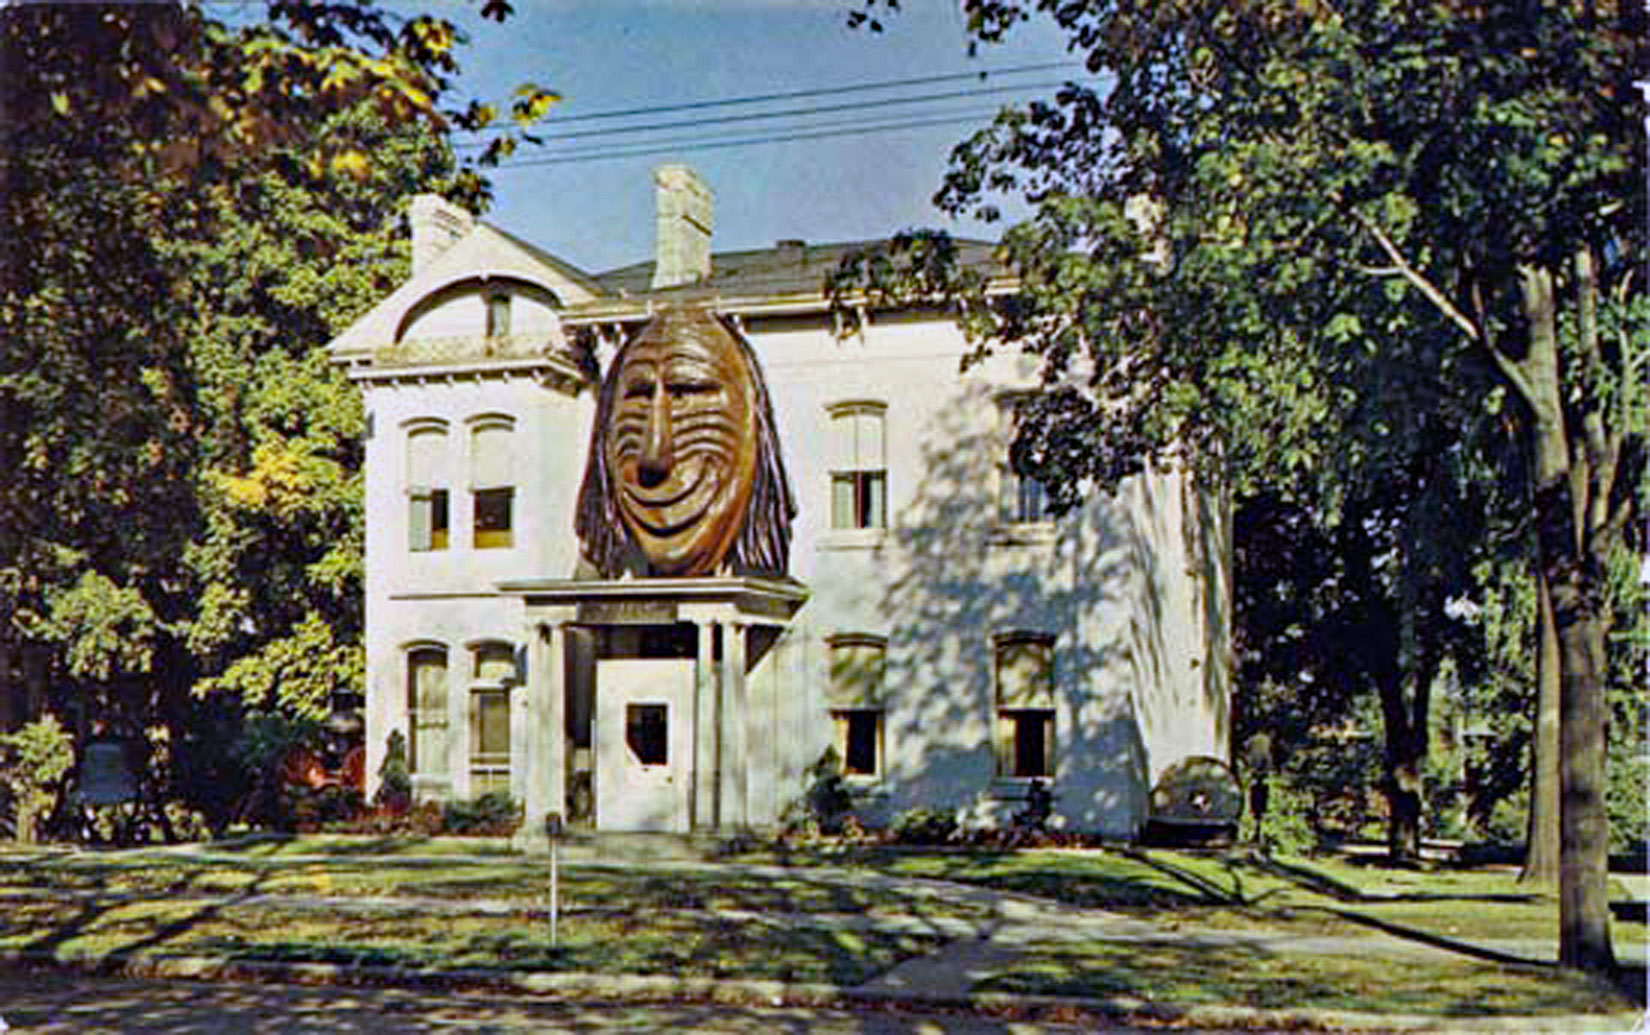 Brant County Museum in 1960. The Aboriginal Mask was added over the front door in 1959. An addition was added to the north side of the building (left side) and opened in November-1966. The Mask was removed from the museum in 1996.  Image courtesy of the Brant Historical Society